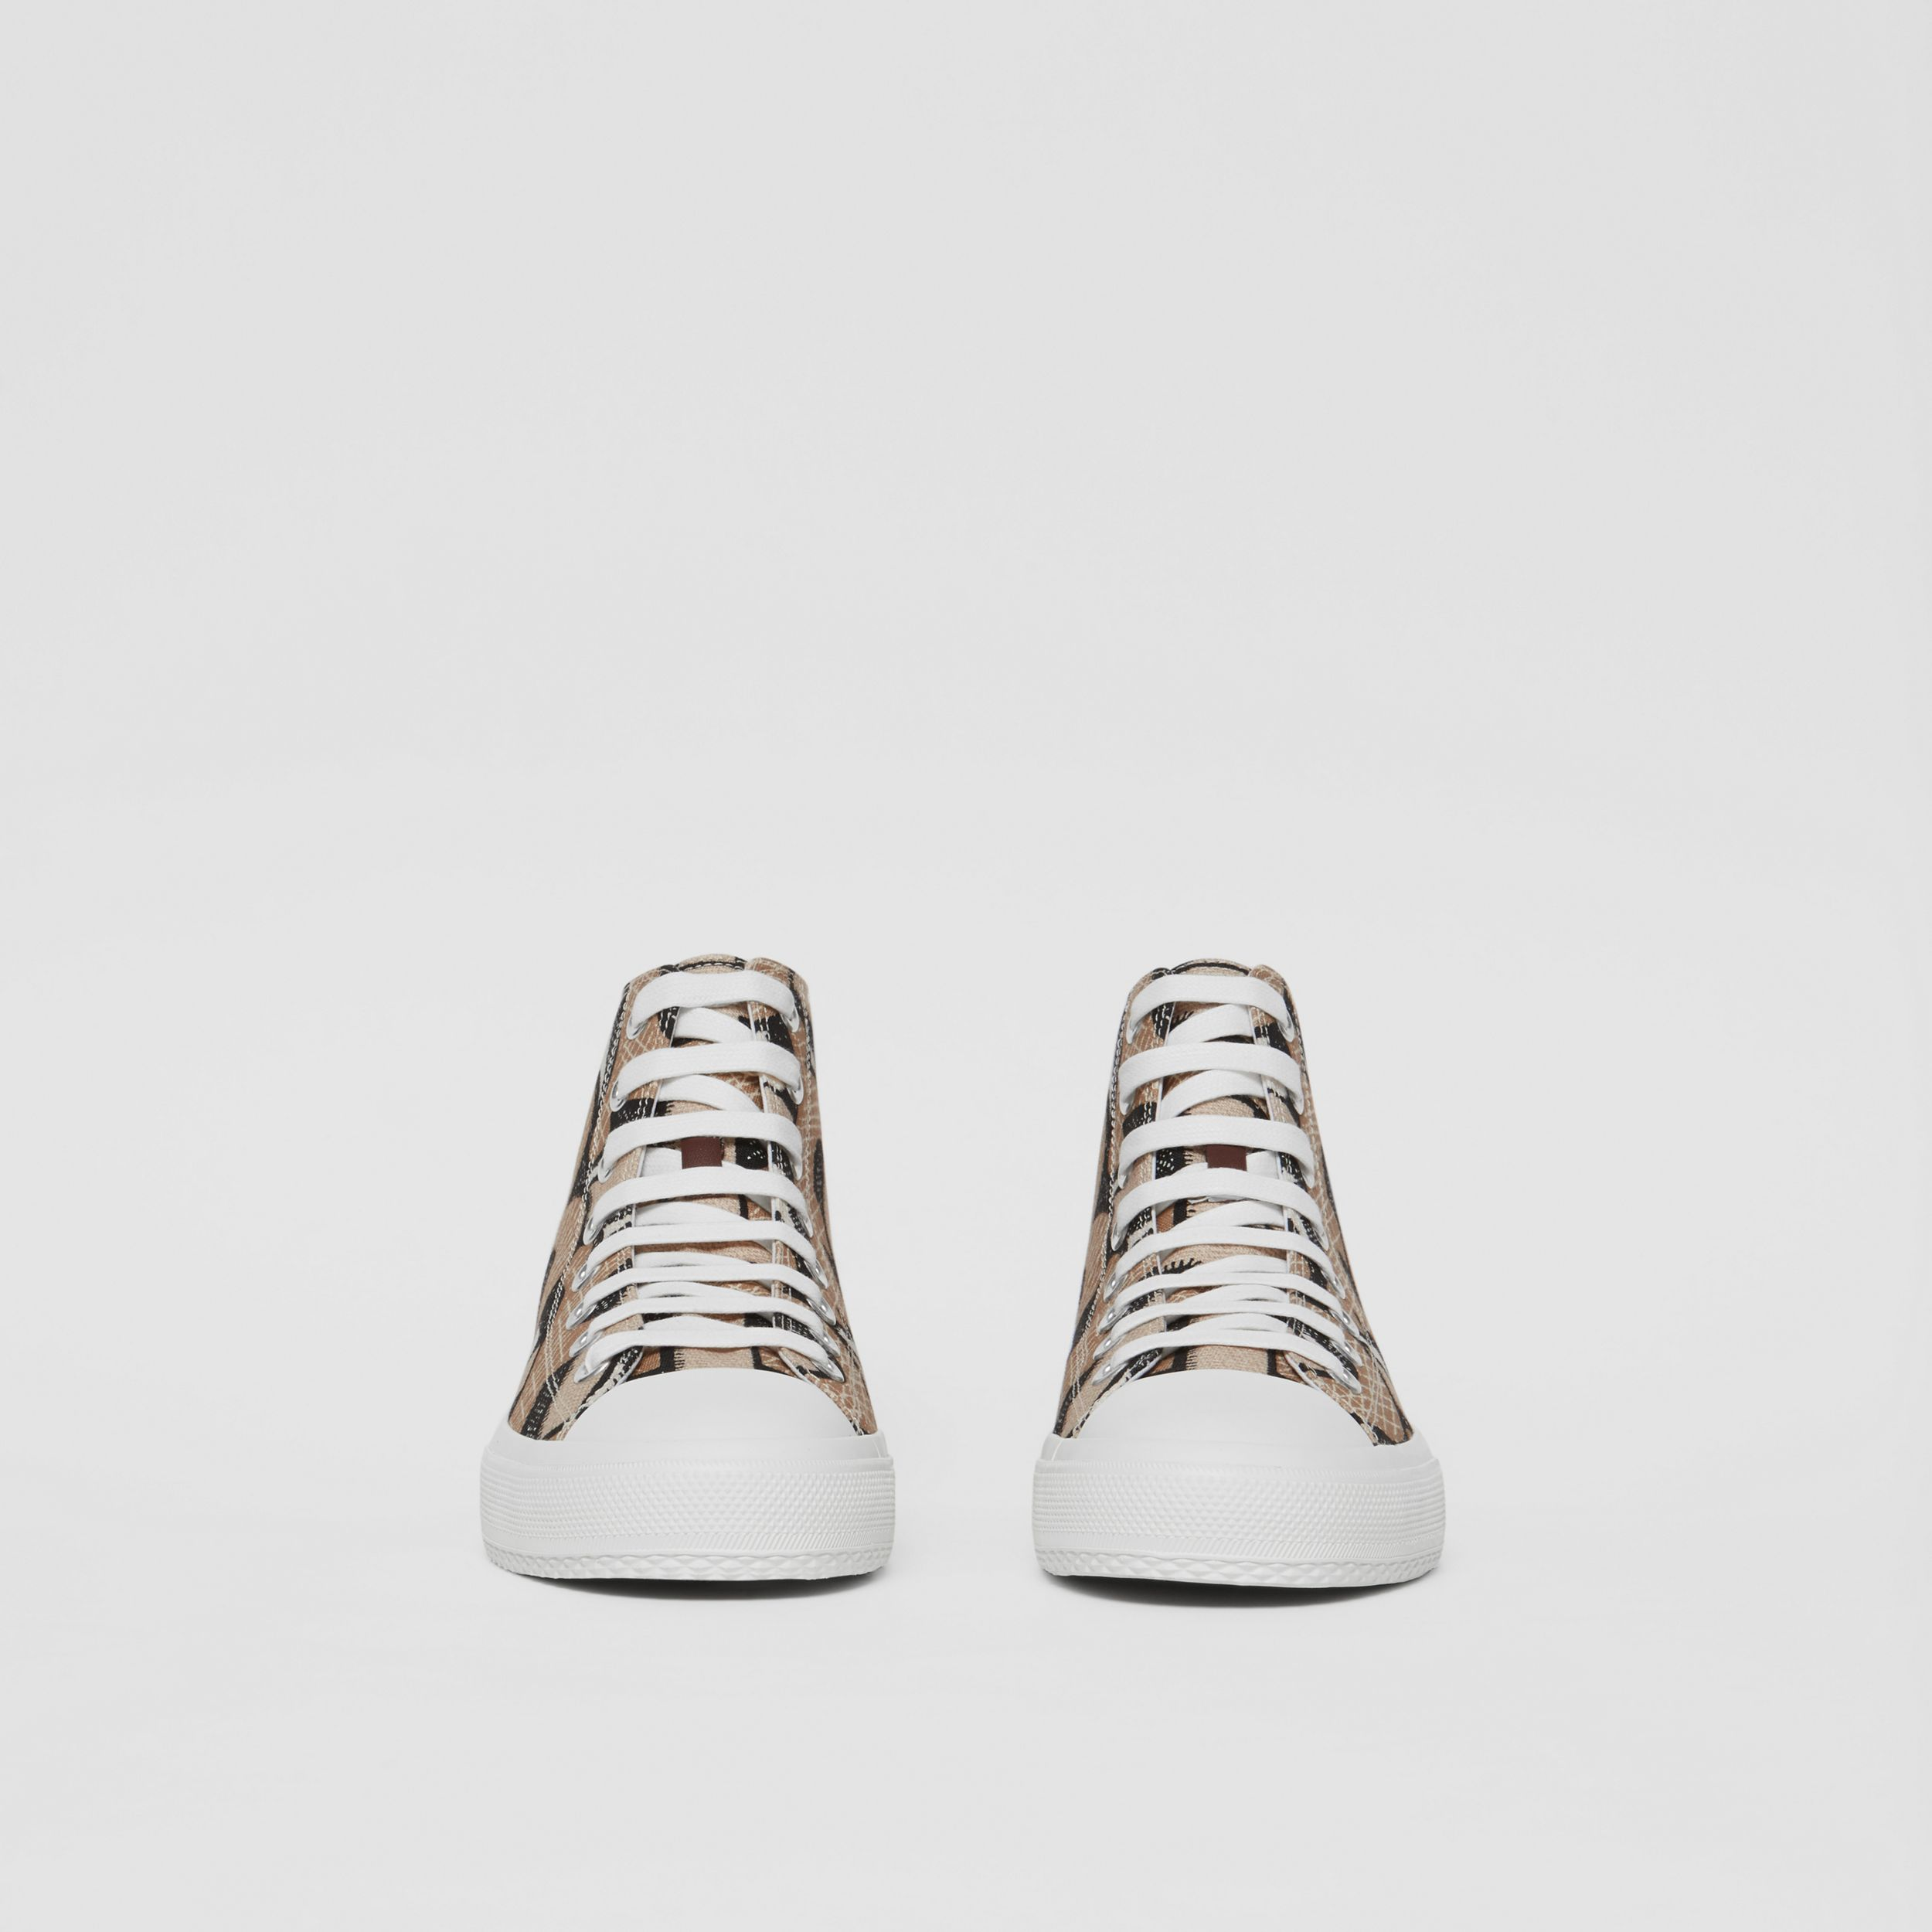 Monogram Print Cotton Canvas High-top Sneakers in Dark Beige - Women | Burberry - 4